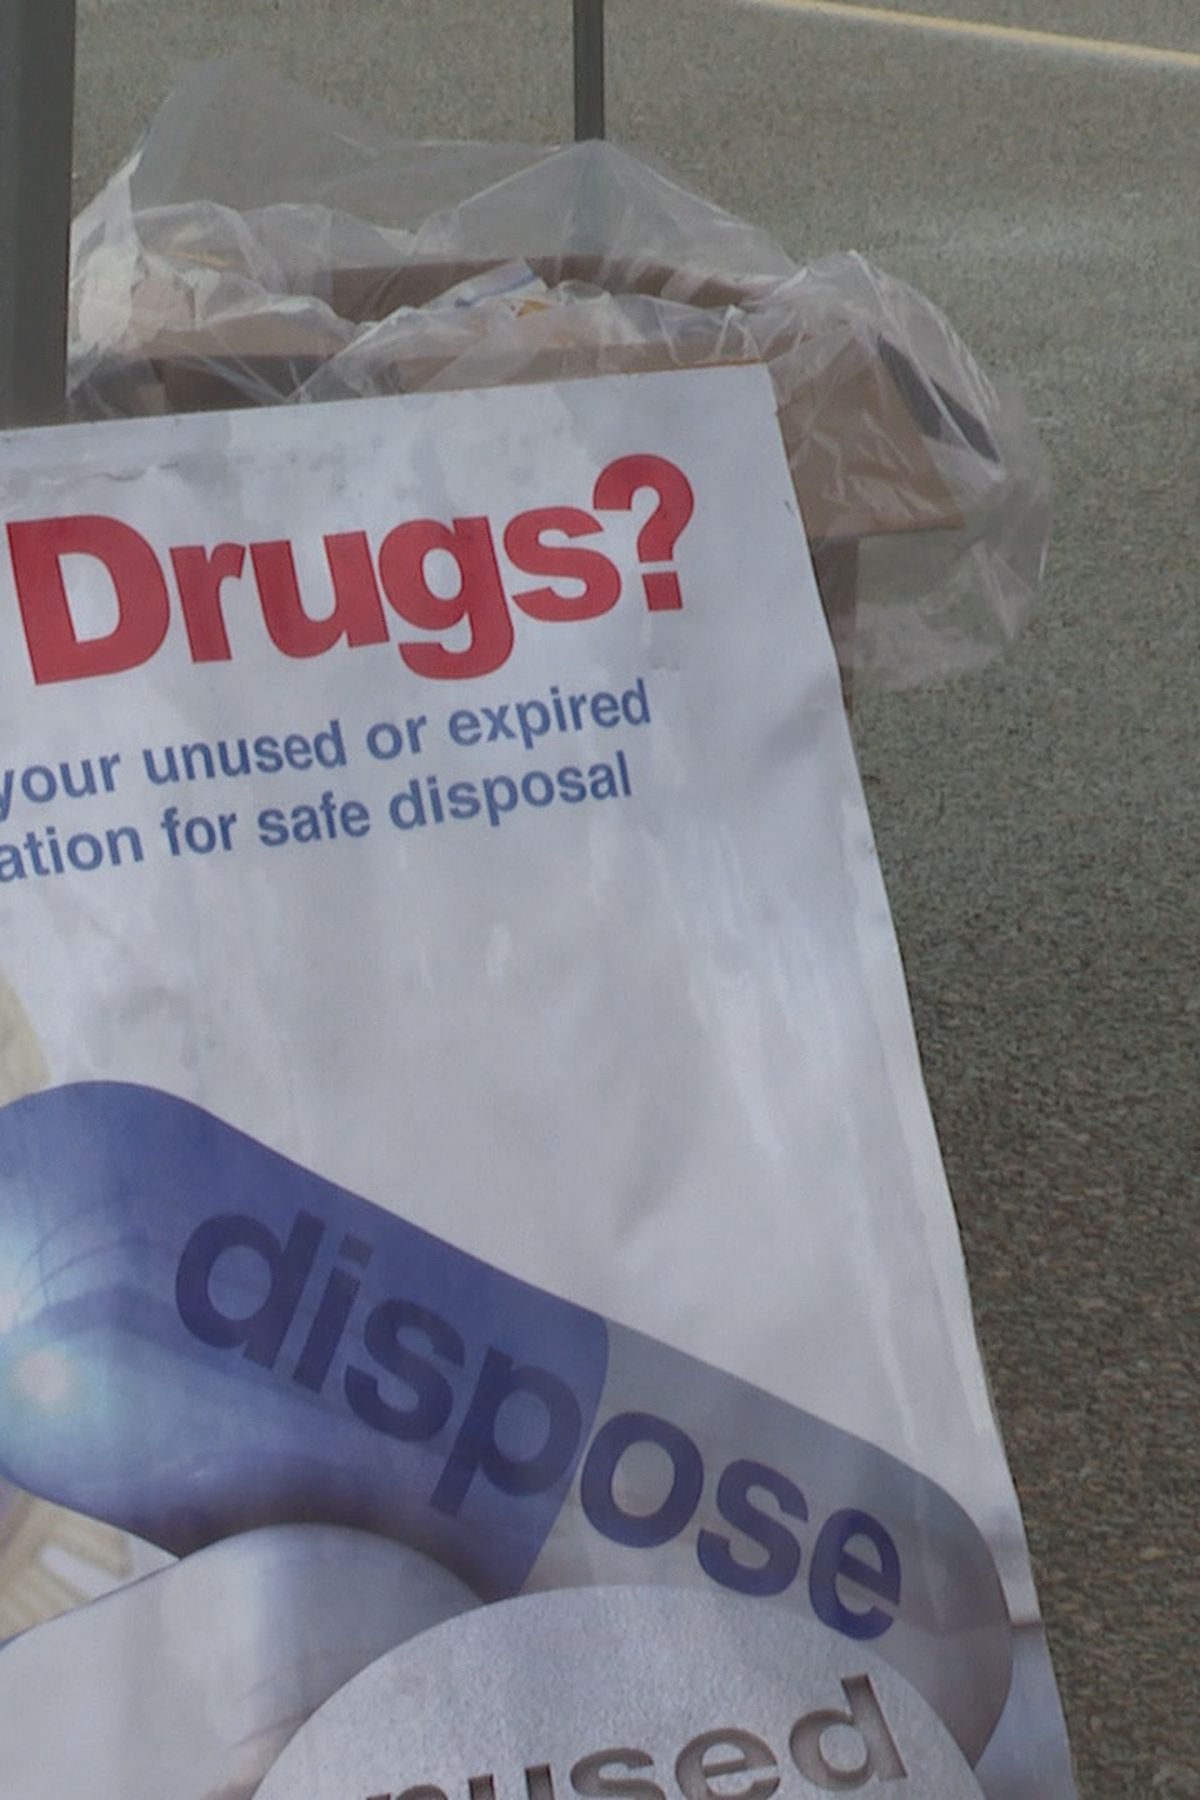 National Drug Take Back Day Clears Cabinets In Vermont